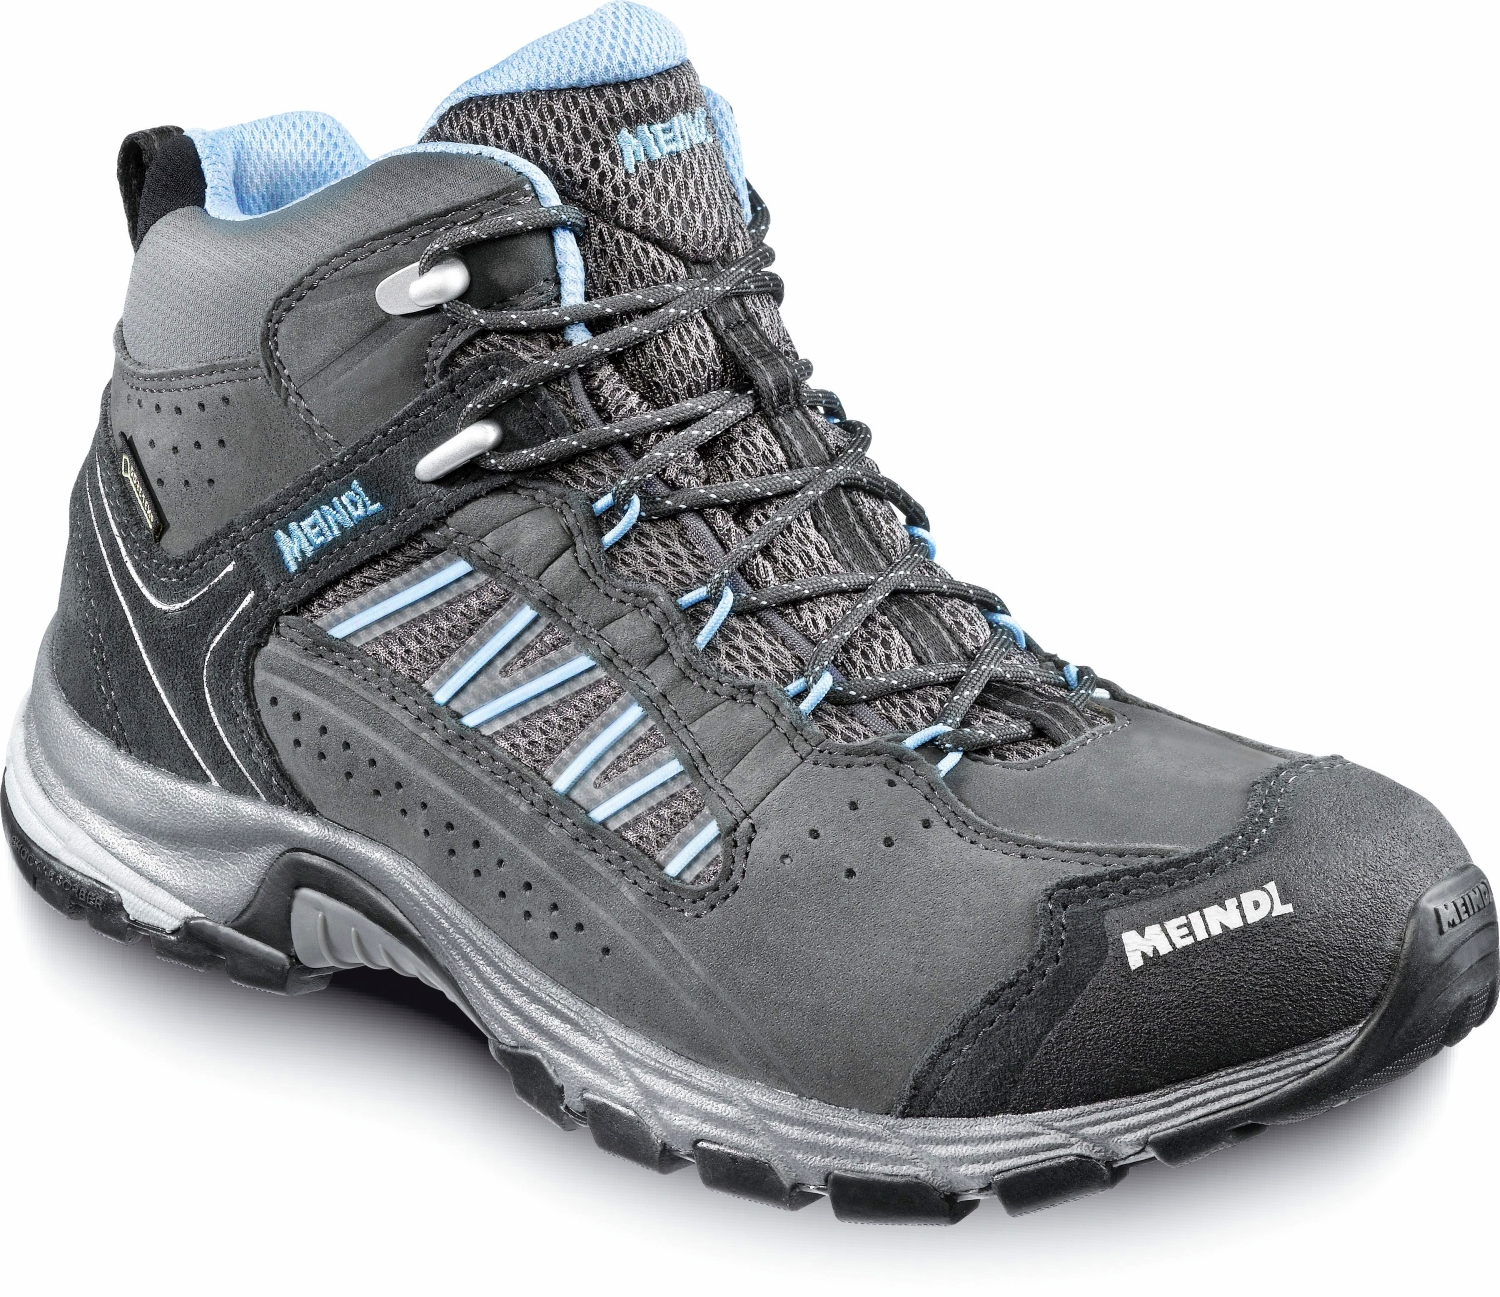 Meindl Journey Lady Mid GTX Größe UK 6 anthrazit-azur A91wqMr